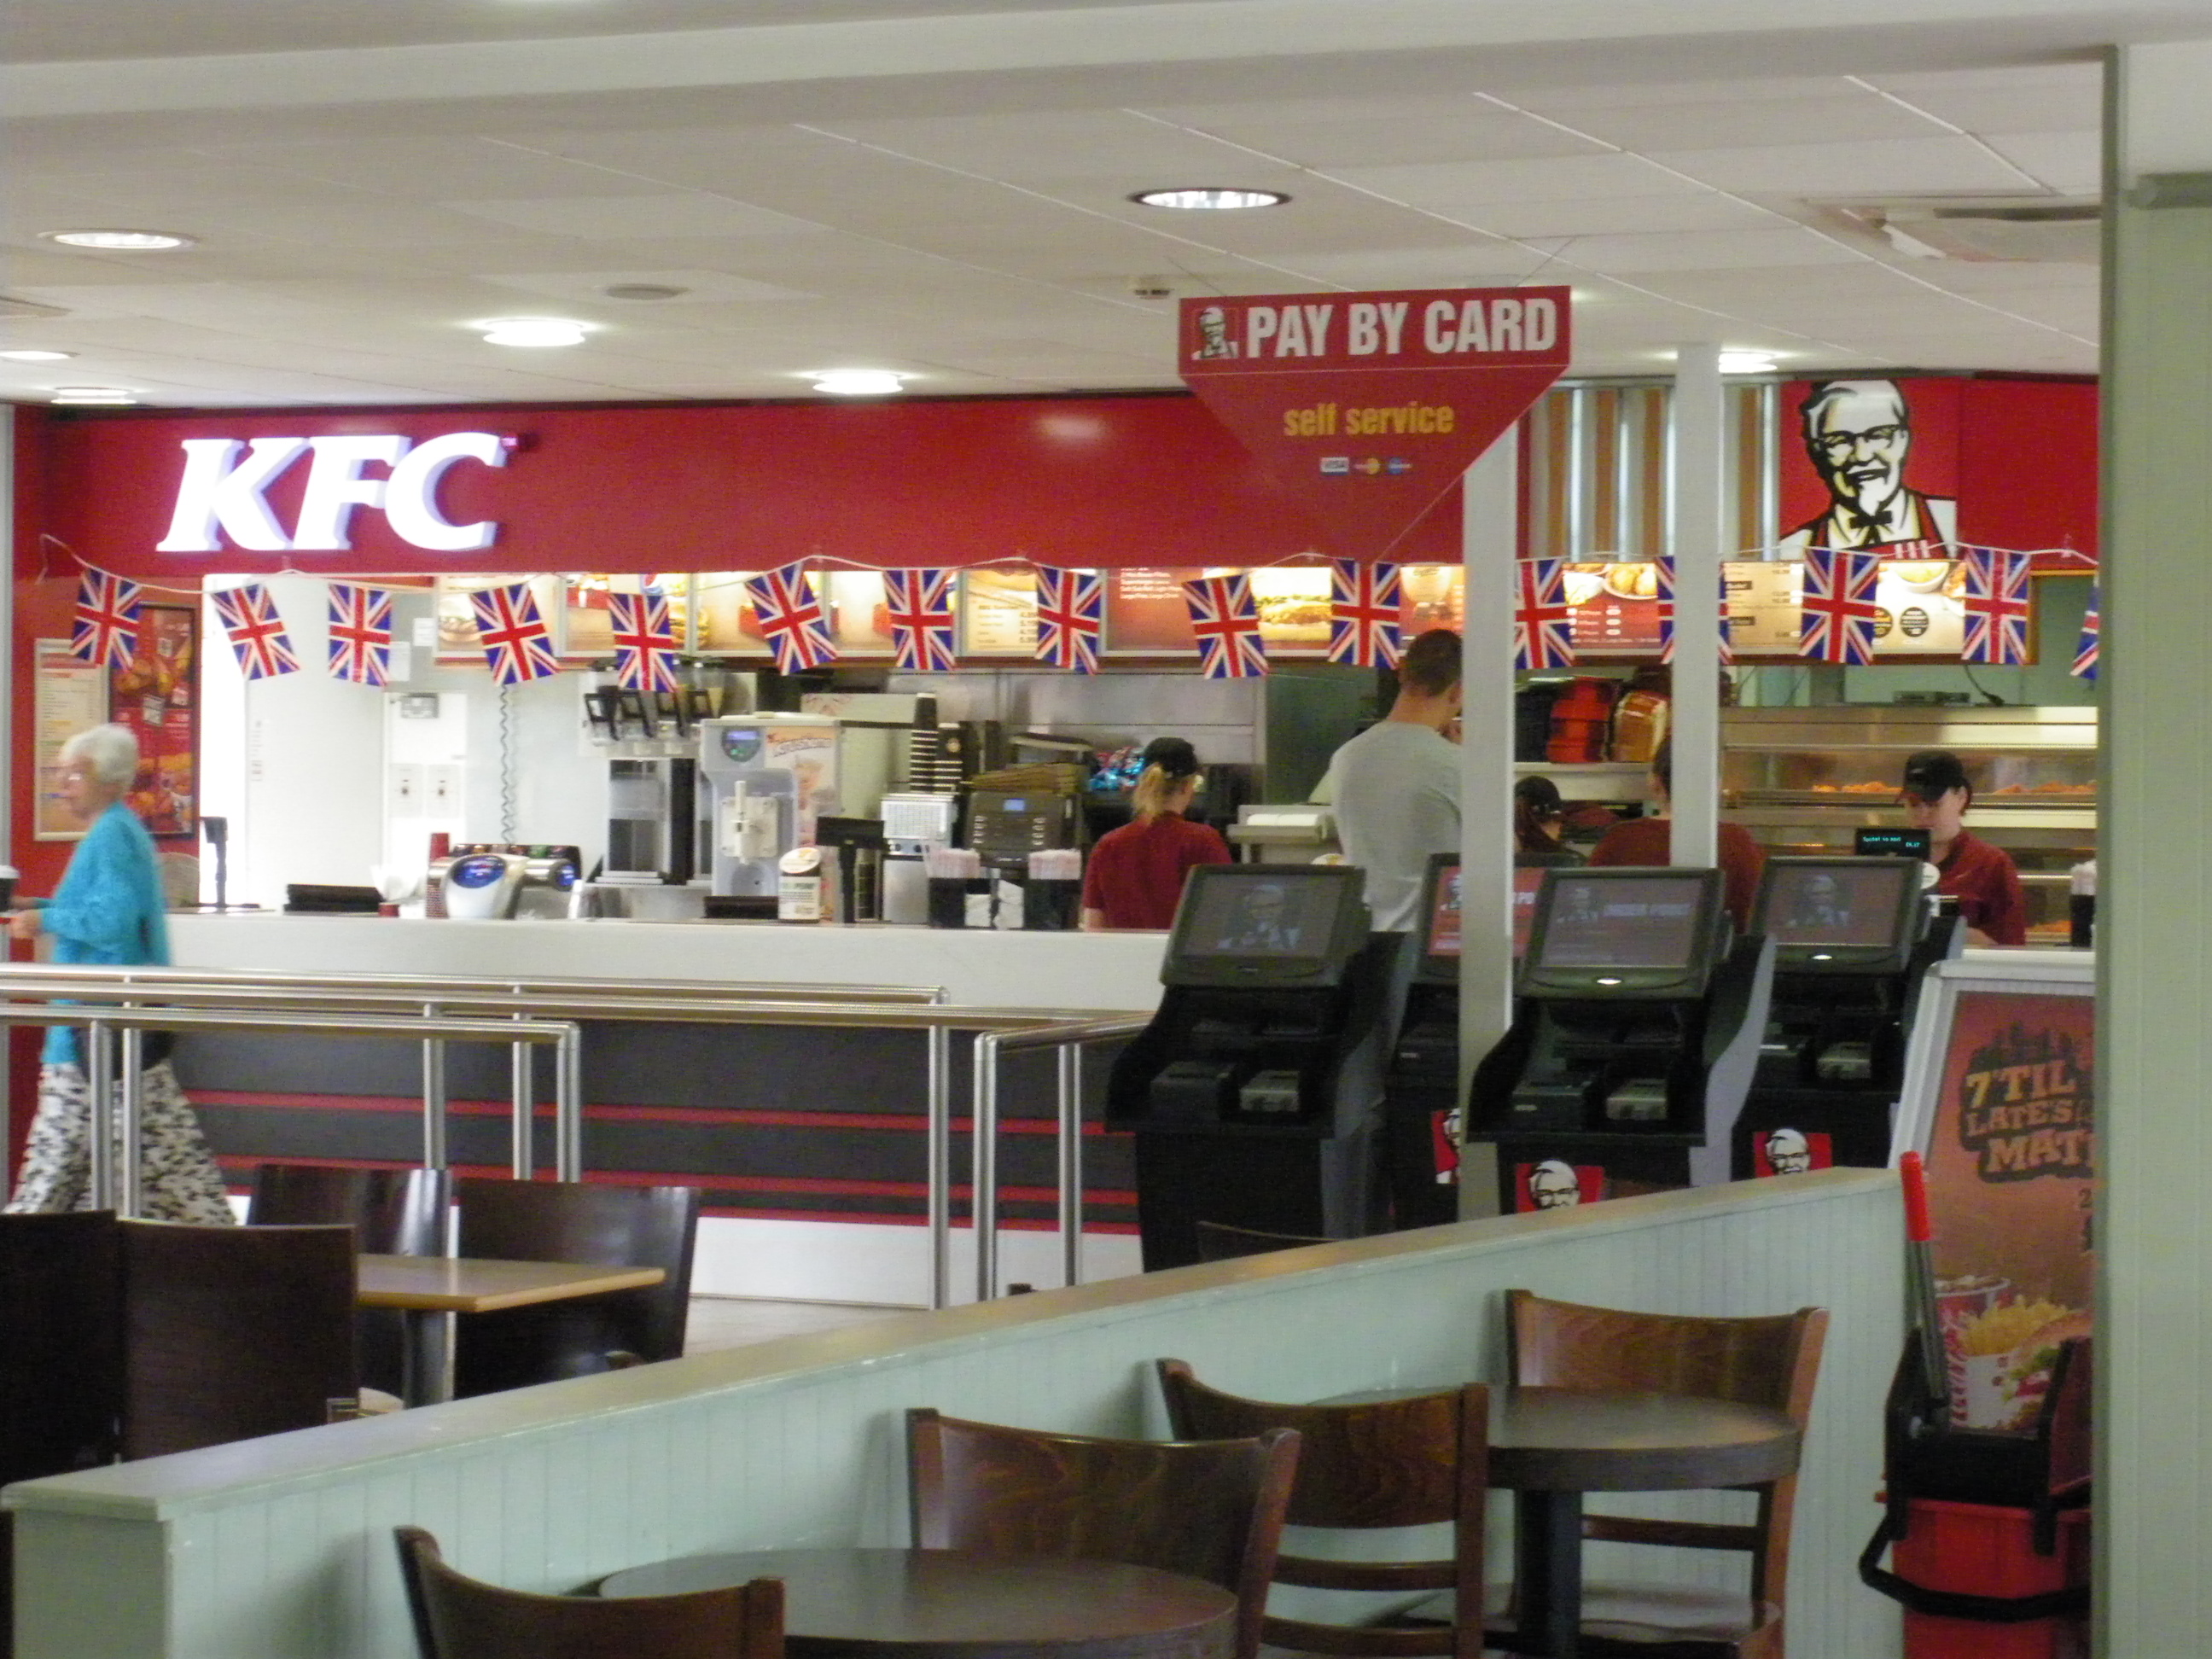 kfc services Kfc's other offers include chicken wraps, sandwiches, salads, roasted and grilled chicken cuisines and dessertsso more people in this word like to prefer kfc because of their health food better than mcd,it not means that kfc is a health food but in others statement that mcd have lack of health food compare to the kfc.